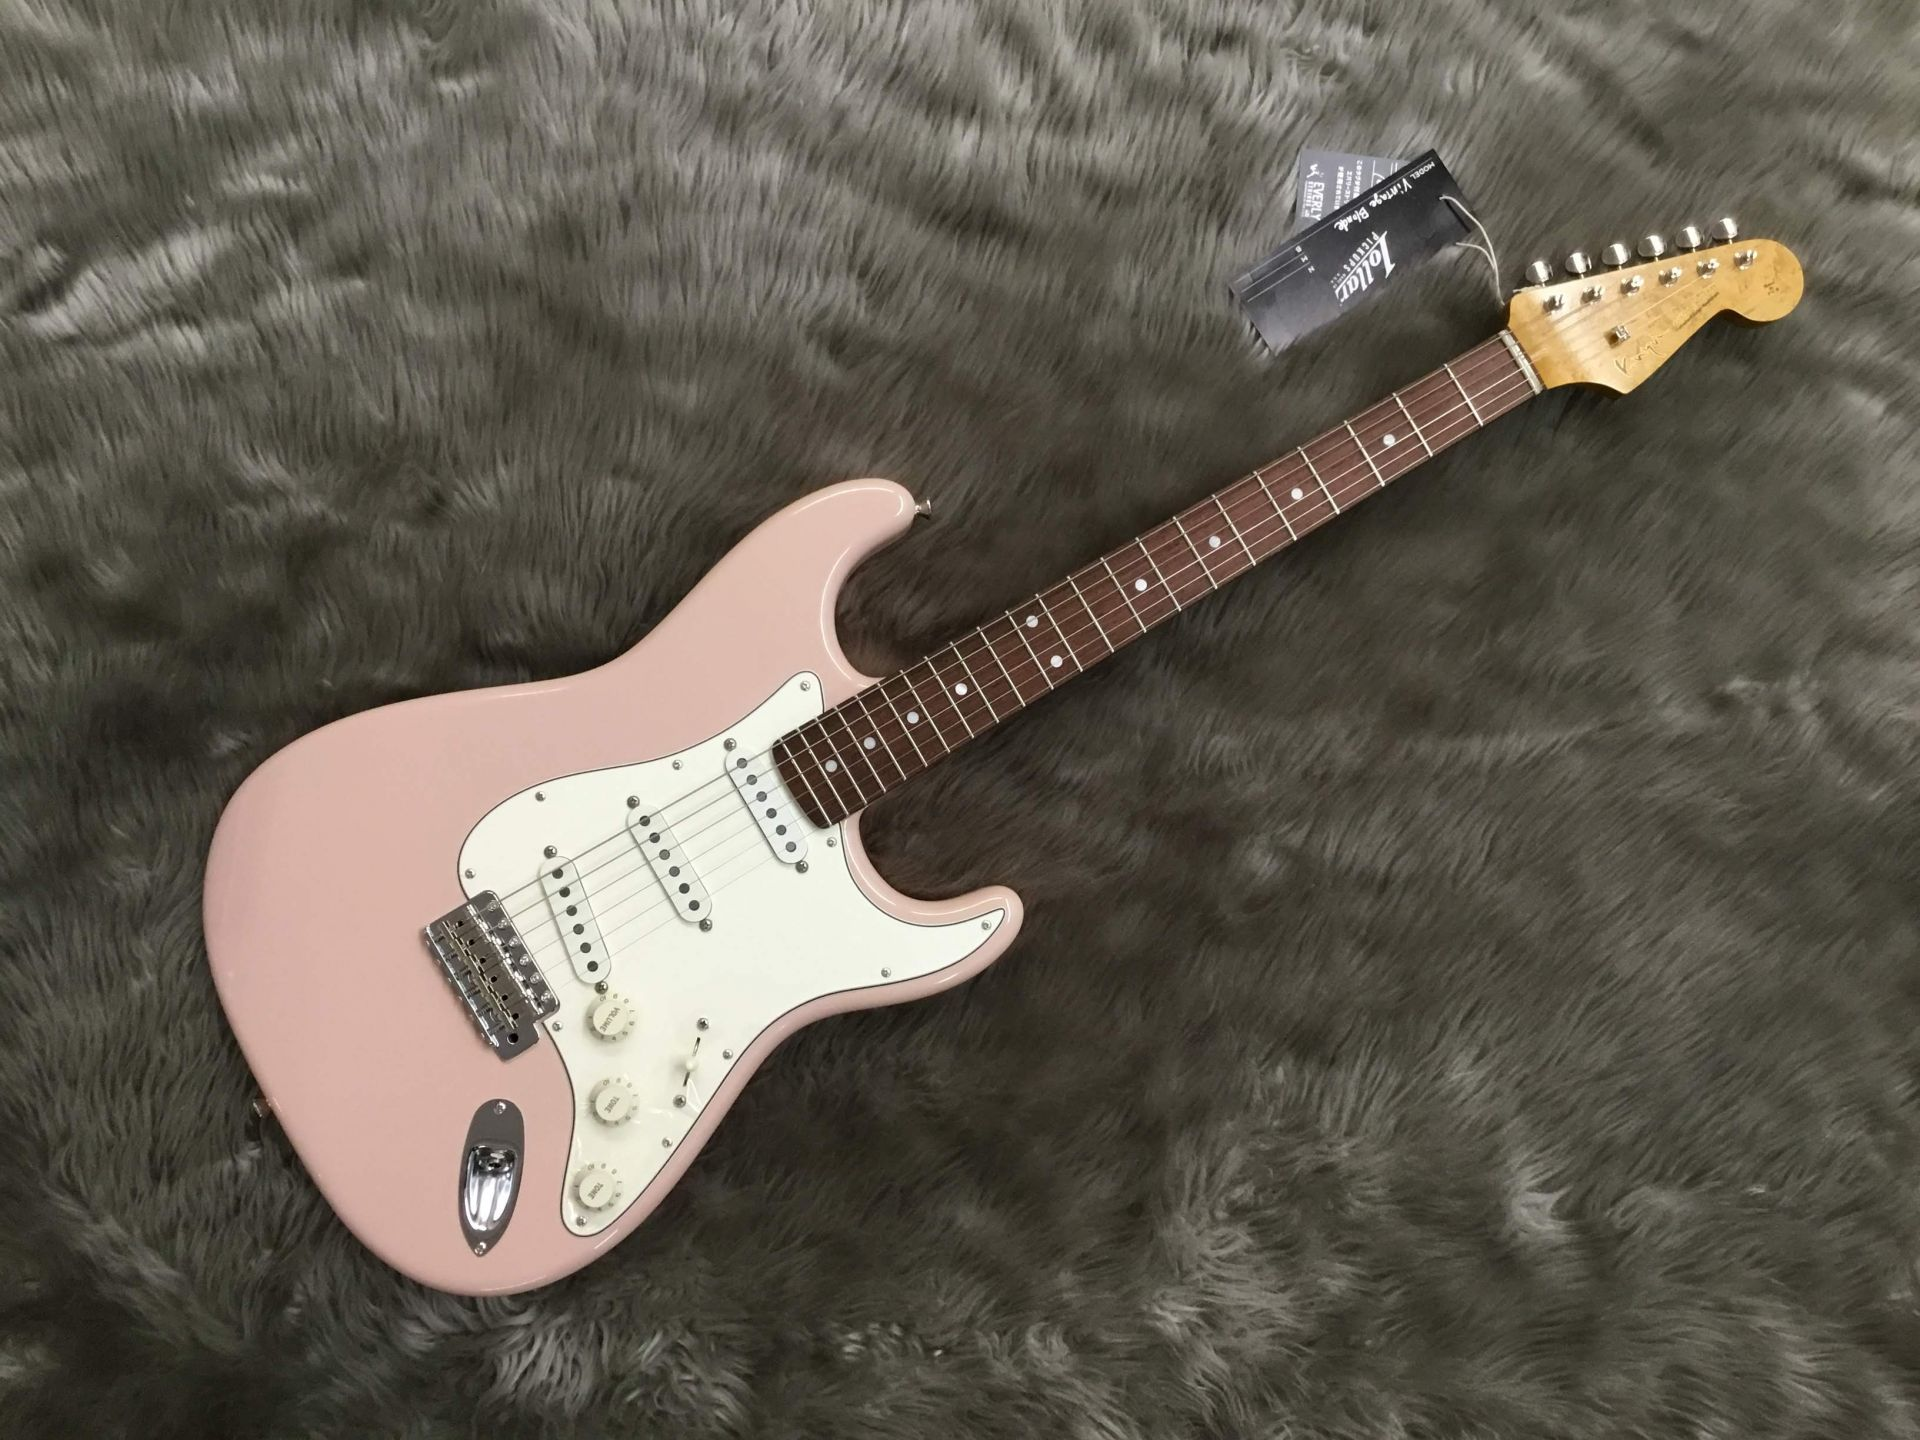 K.Nyui Custom Guitars KNST SHP